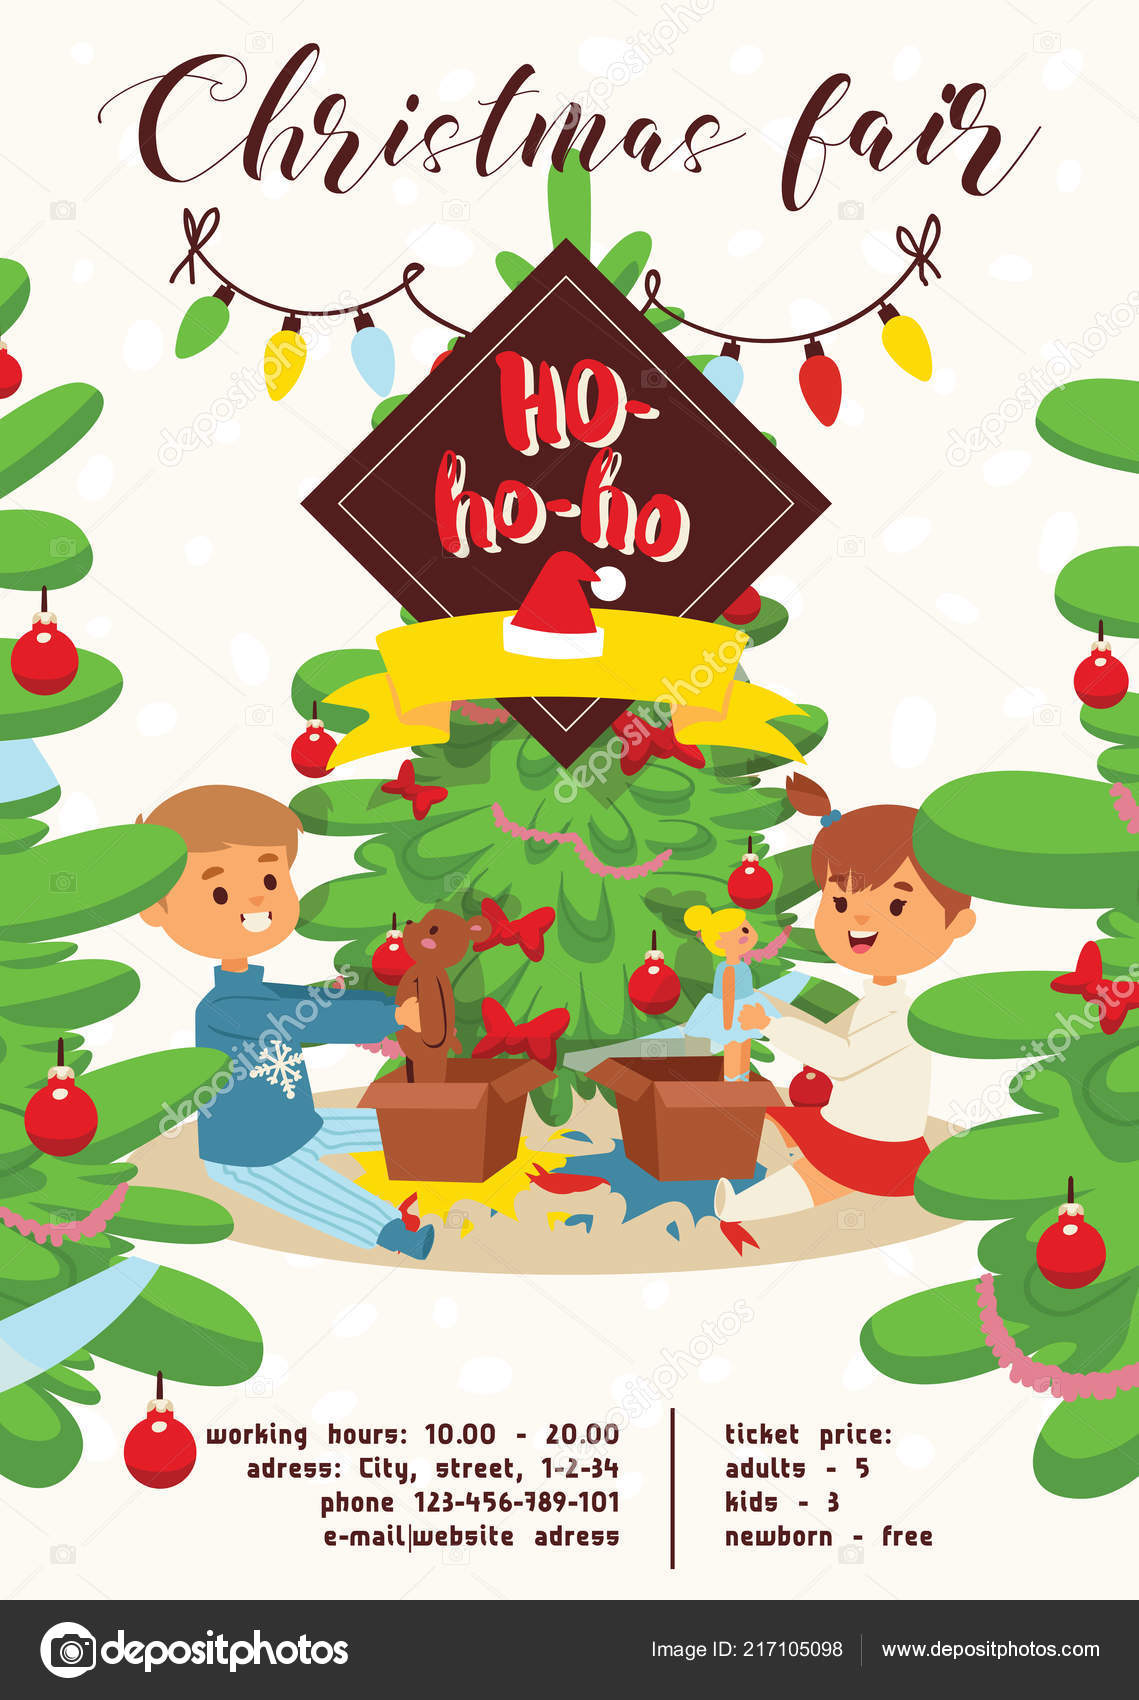 christmas 2019 happy new year greeting card vector boy s brothers find gifts near tree friends background banner holidays winter xmas congratulation new